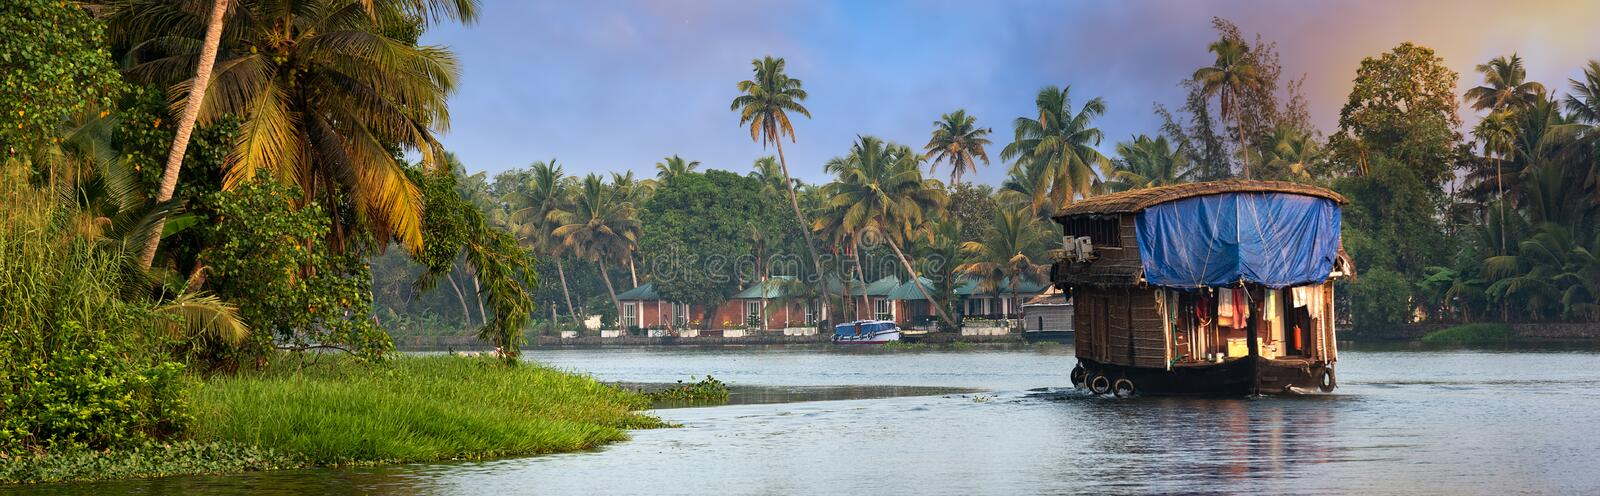 Houseboat in Kerala, India. A traditional house boat is anchored on the shores of a fishing lake in Kerala`s Backwaters, Kerala, India stock photography